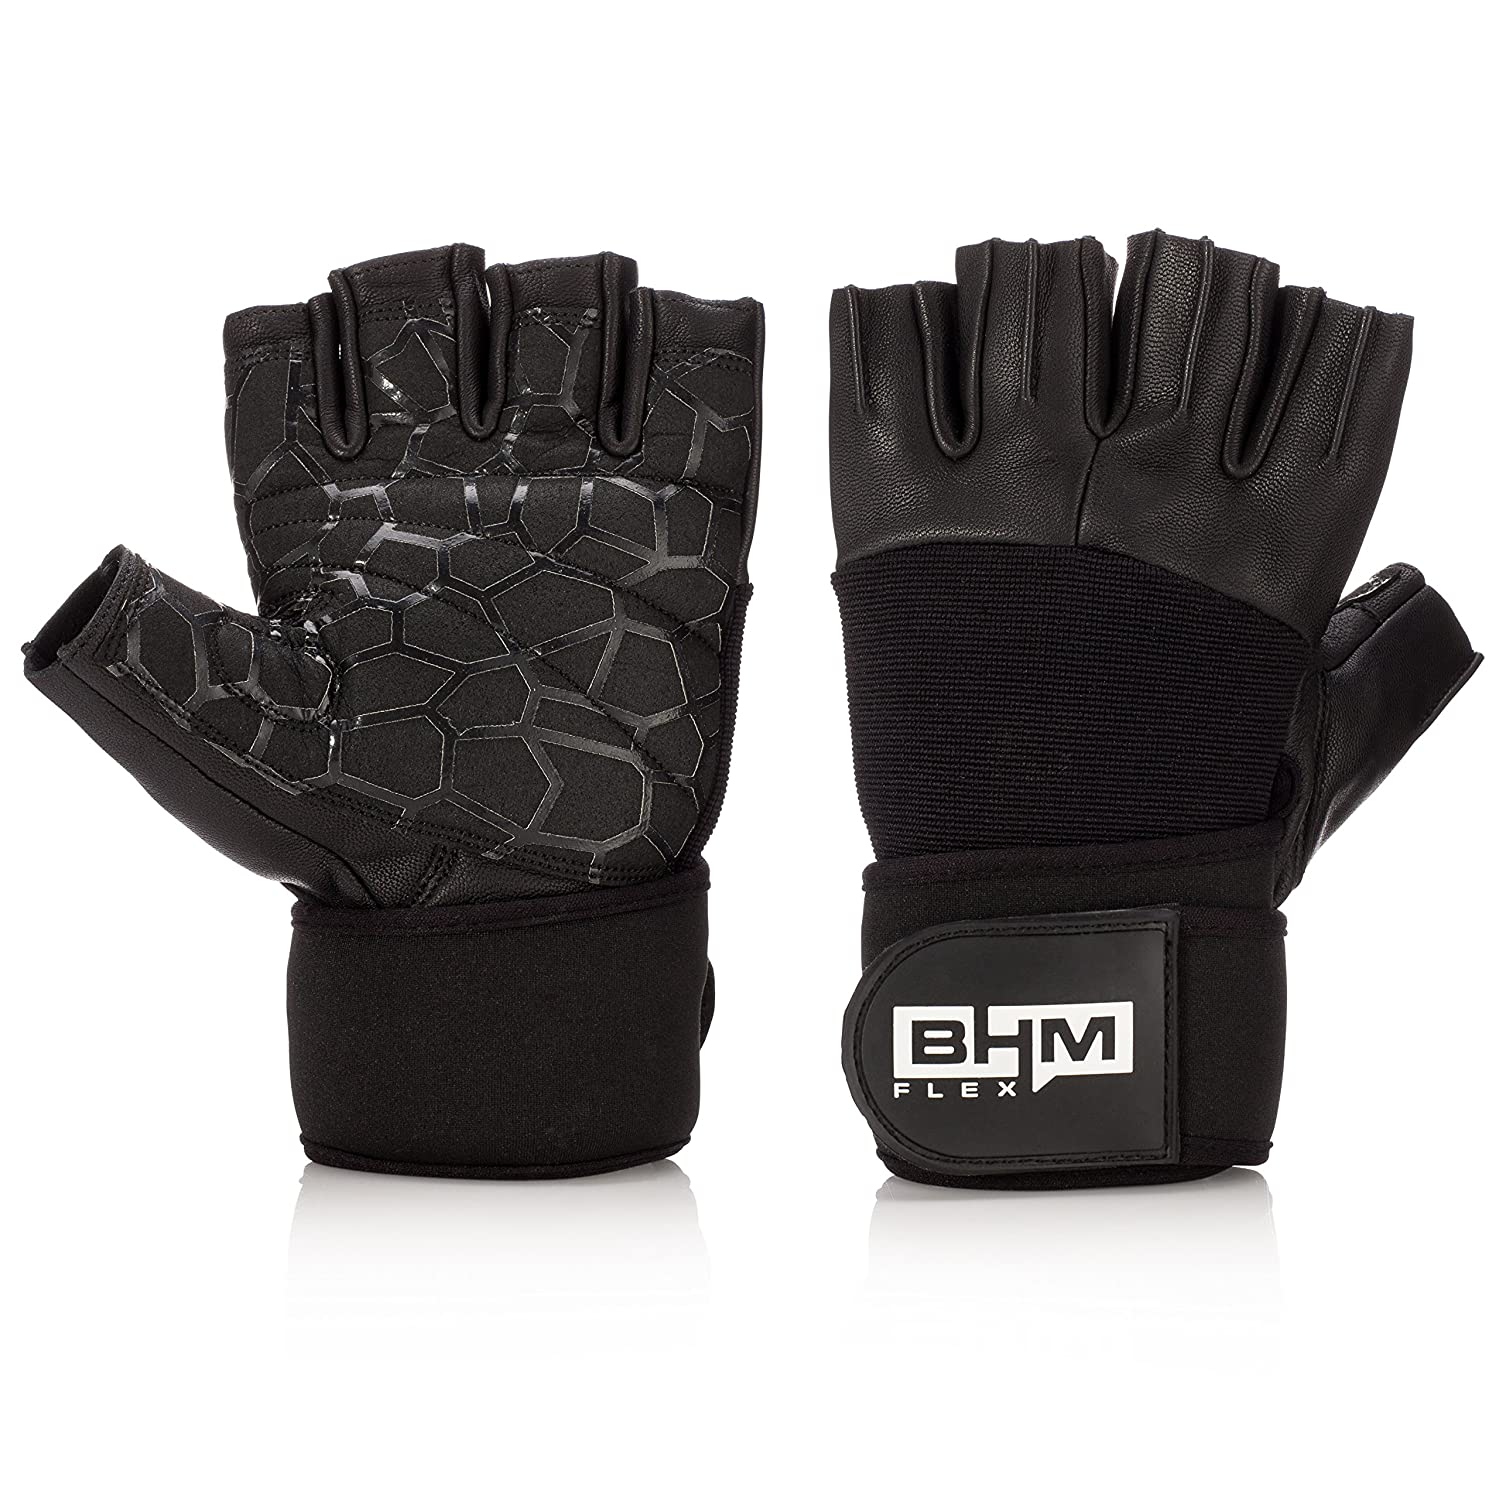 Workout Fitness Gloves - Women/Men Lightweight Leather Gloves - Sports/Gym/Weightlifting/Crossfit/Exercise/Training/Climbing Wrist Wraps Glove - Support Equipment Full Palm Protection Power Grips